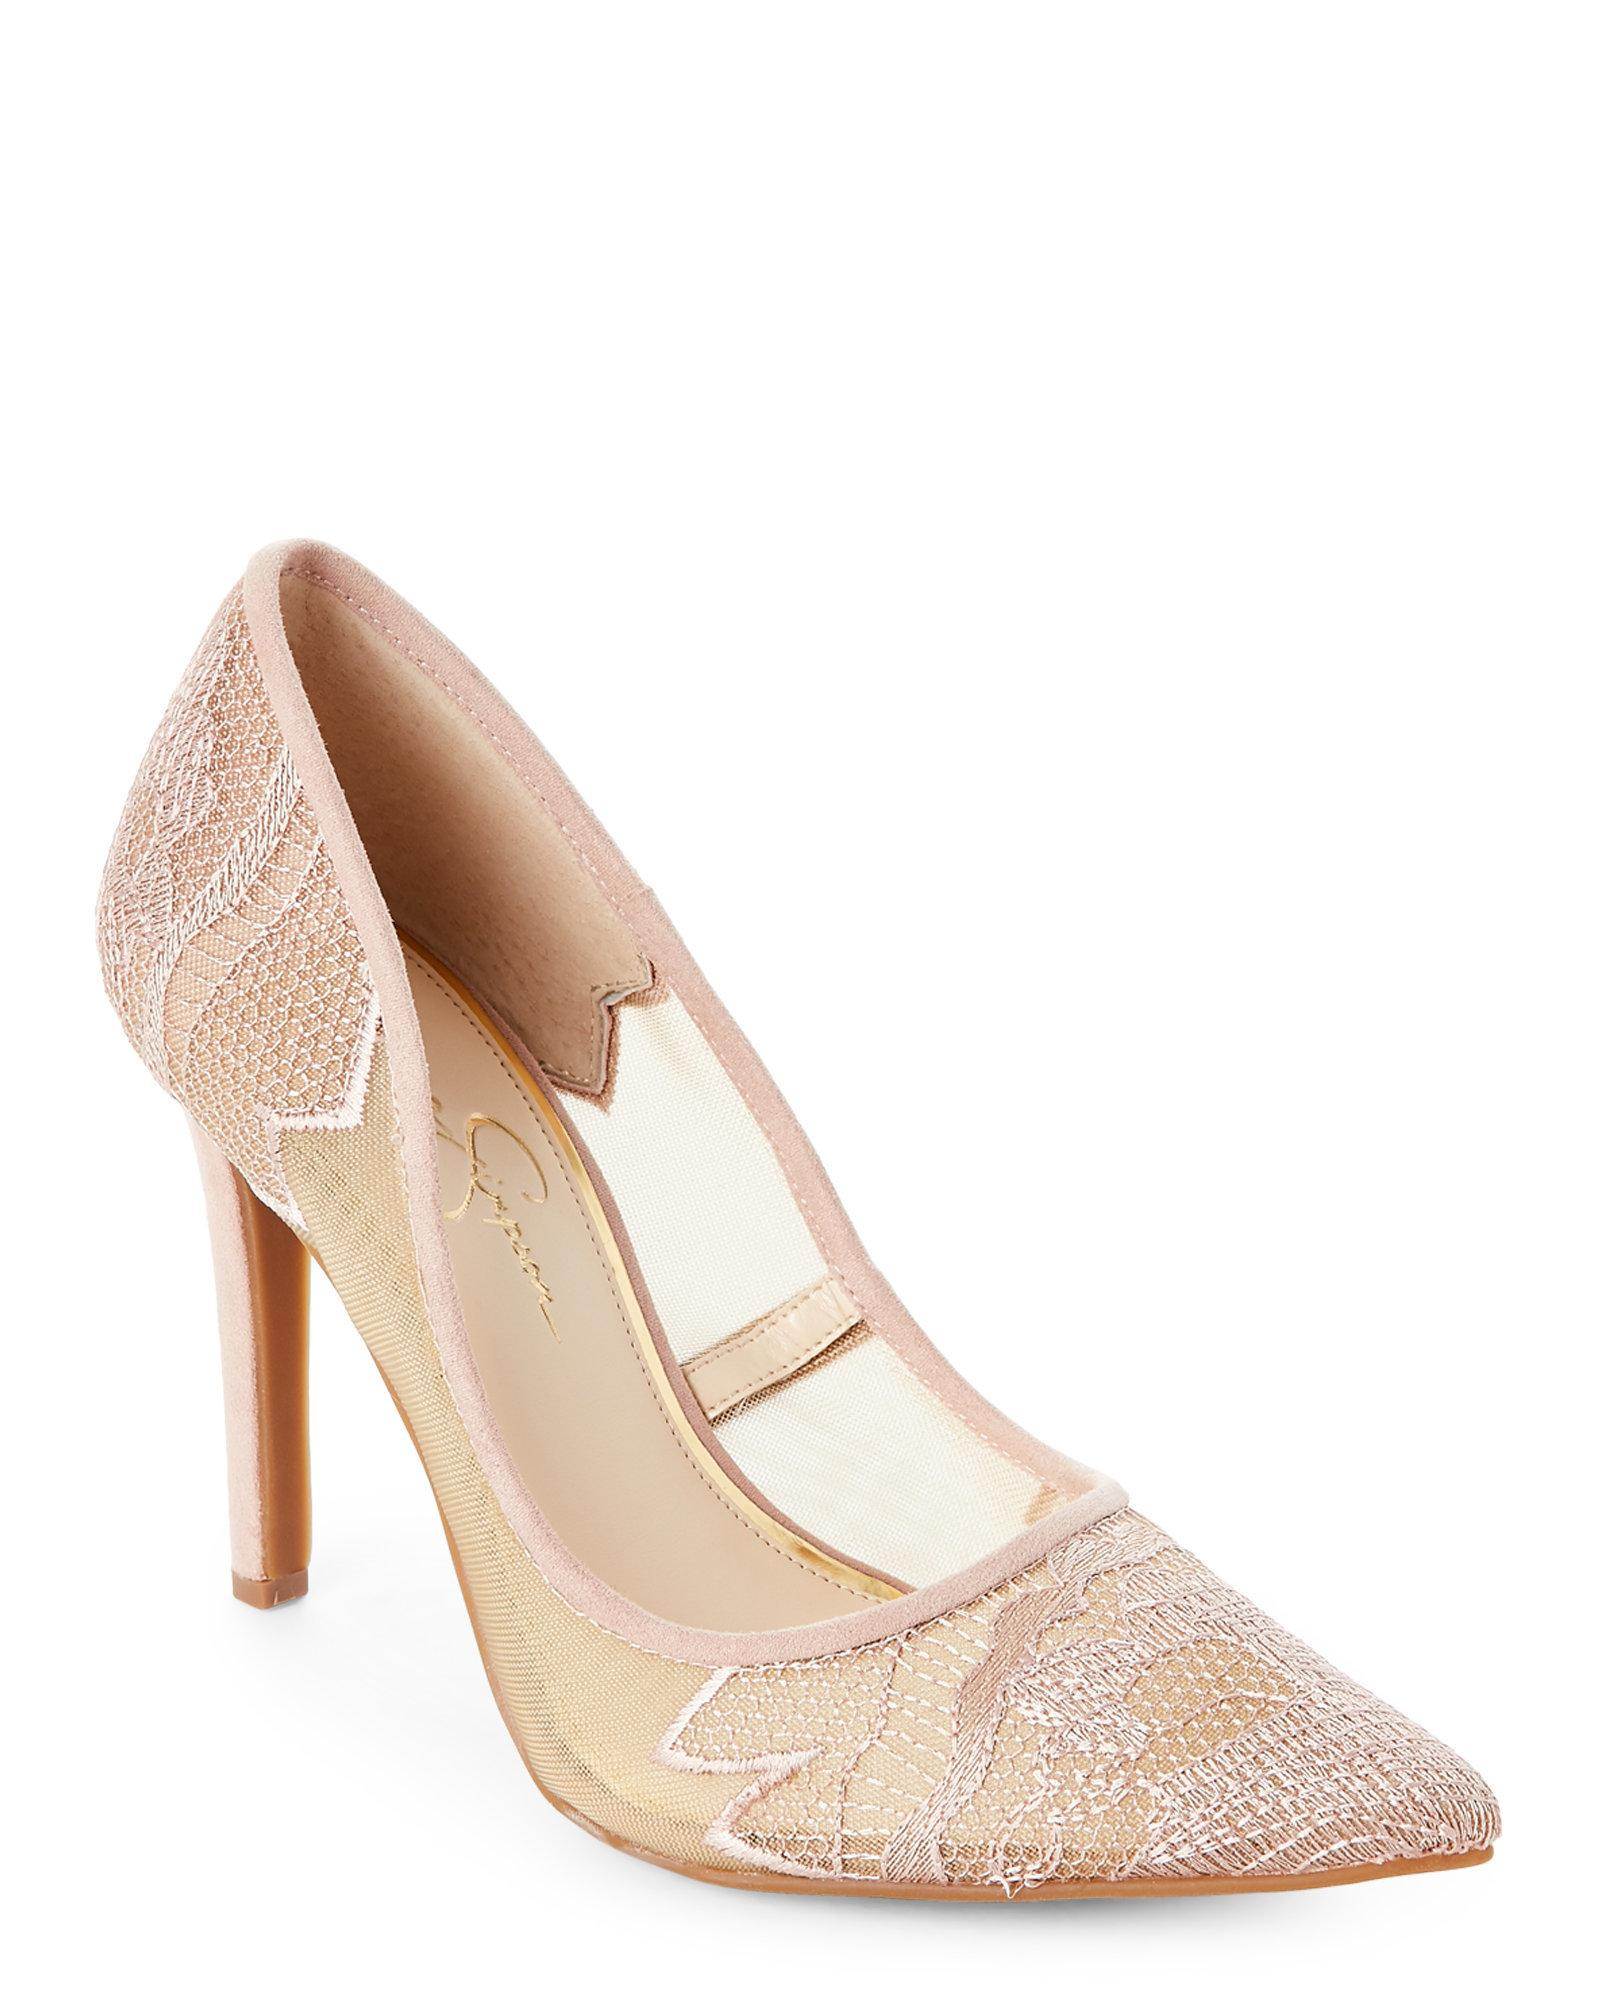 c89c40d2543 Jessica Simpson Natural Nude Blush Camba Lace Pointed Toe Pumps